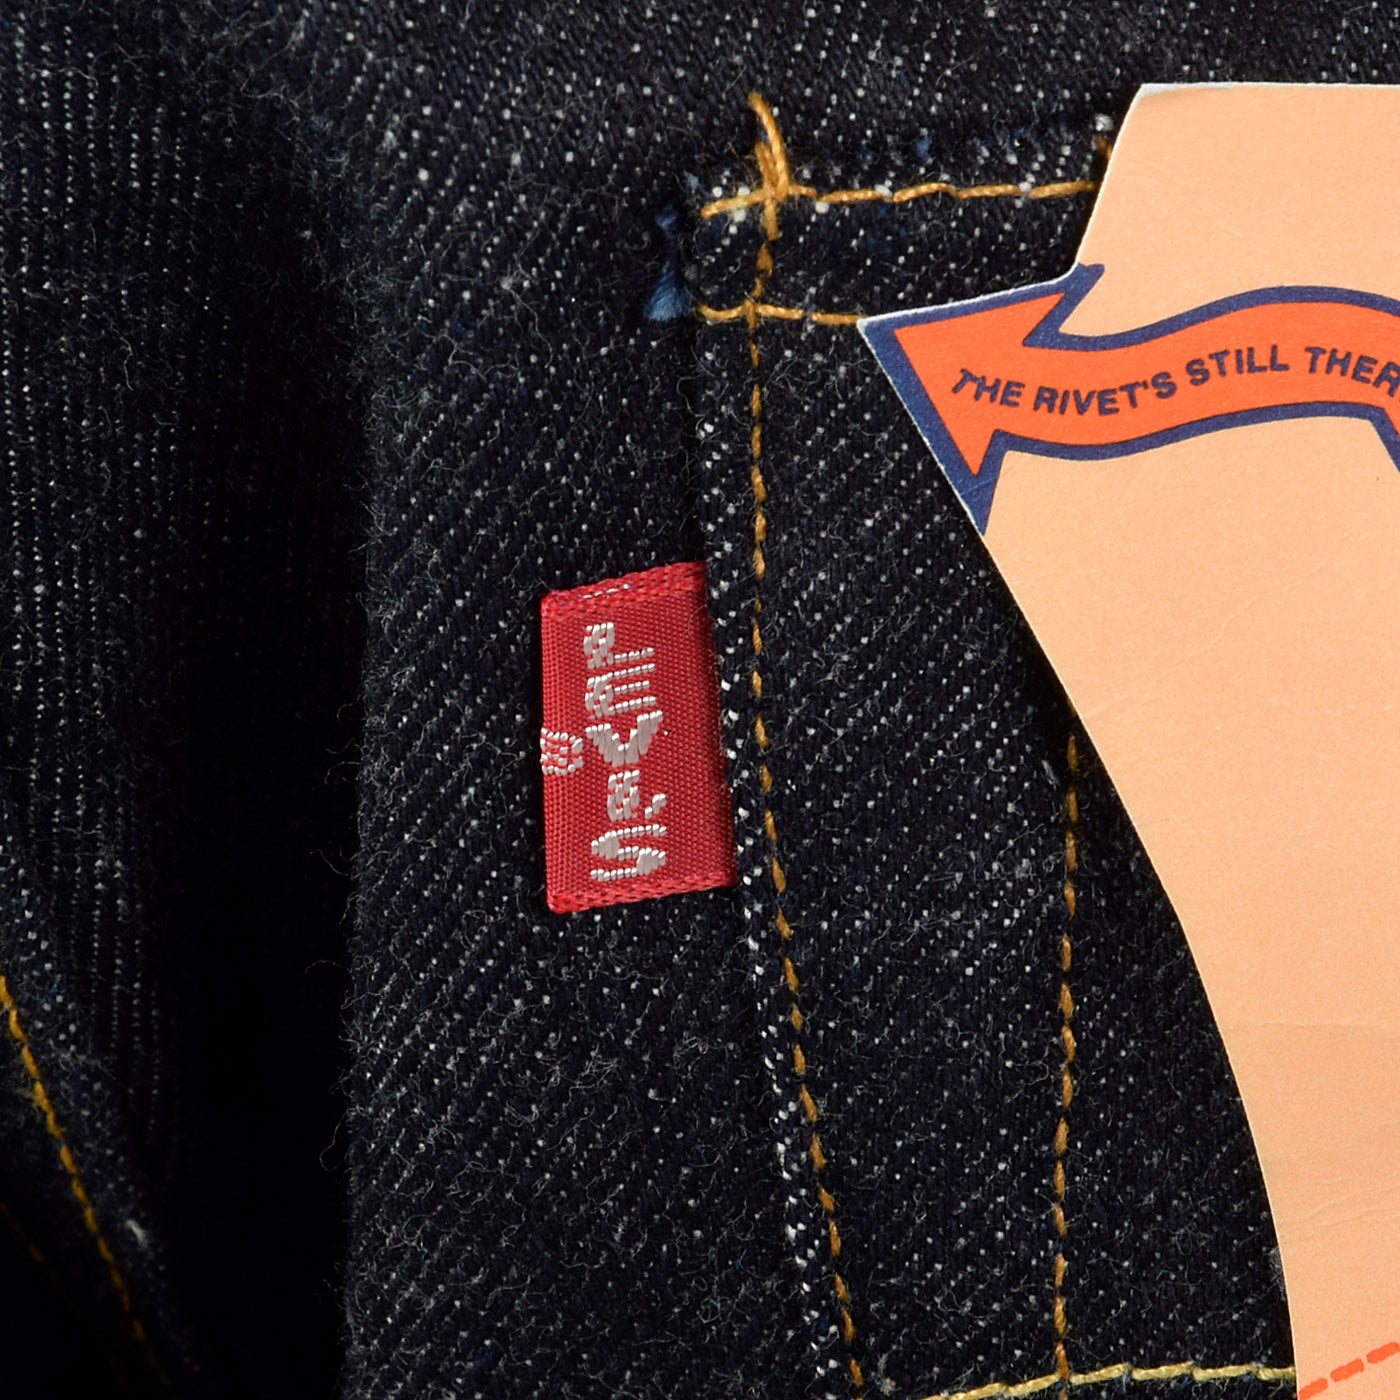 Levi's LVC 1955 Reproduction Jeans, Cone Denim with Red Line Selvedge, 1996